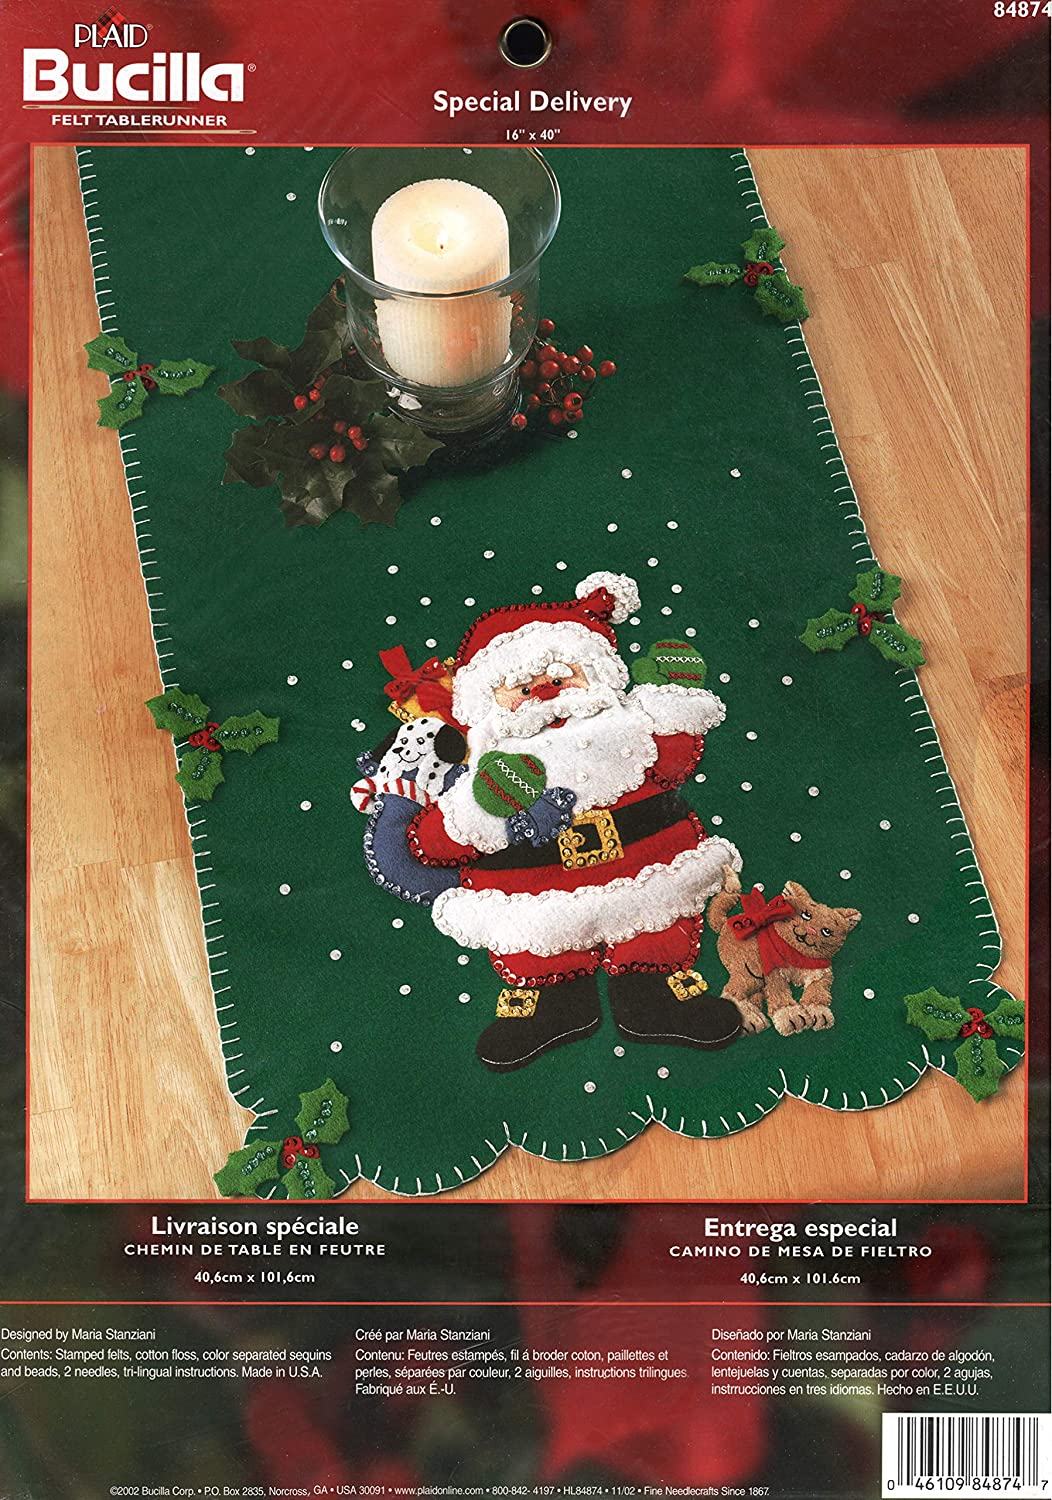 Bucilla Special Delivery Felt Tablerunner Kit 84874